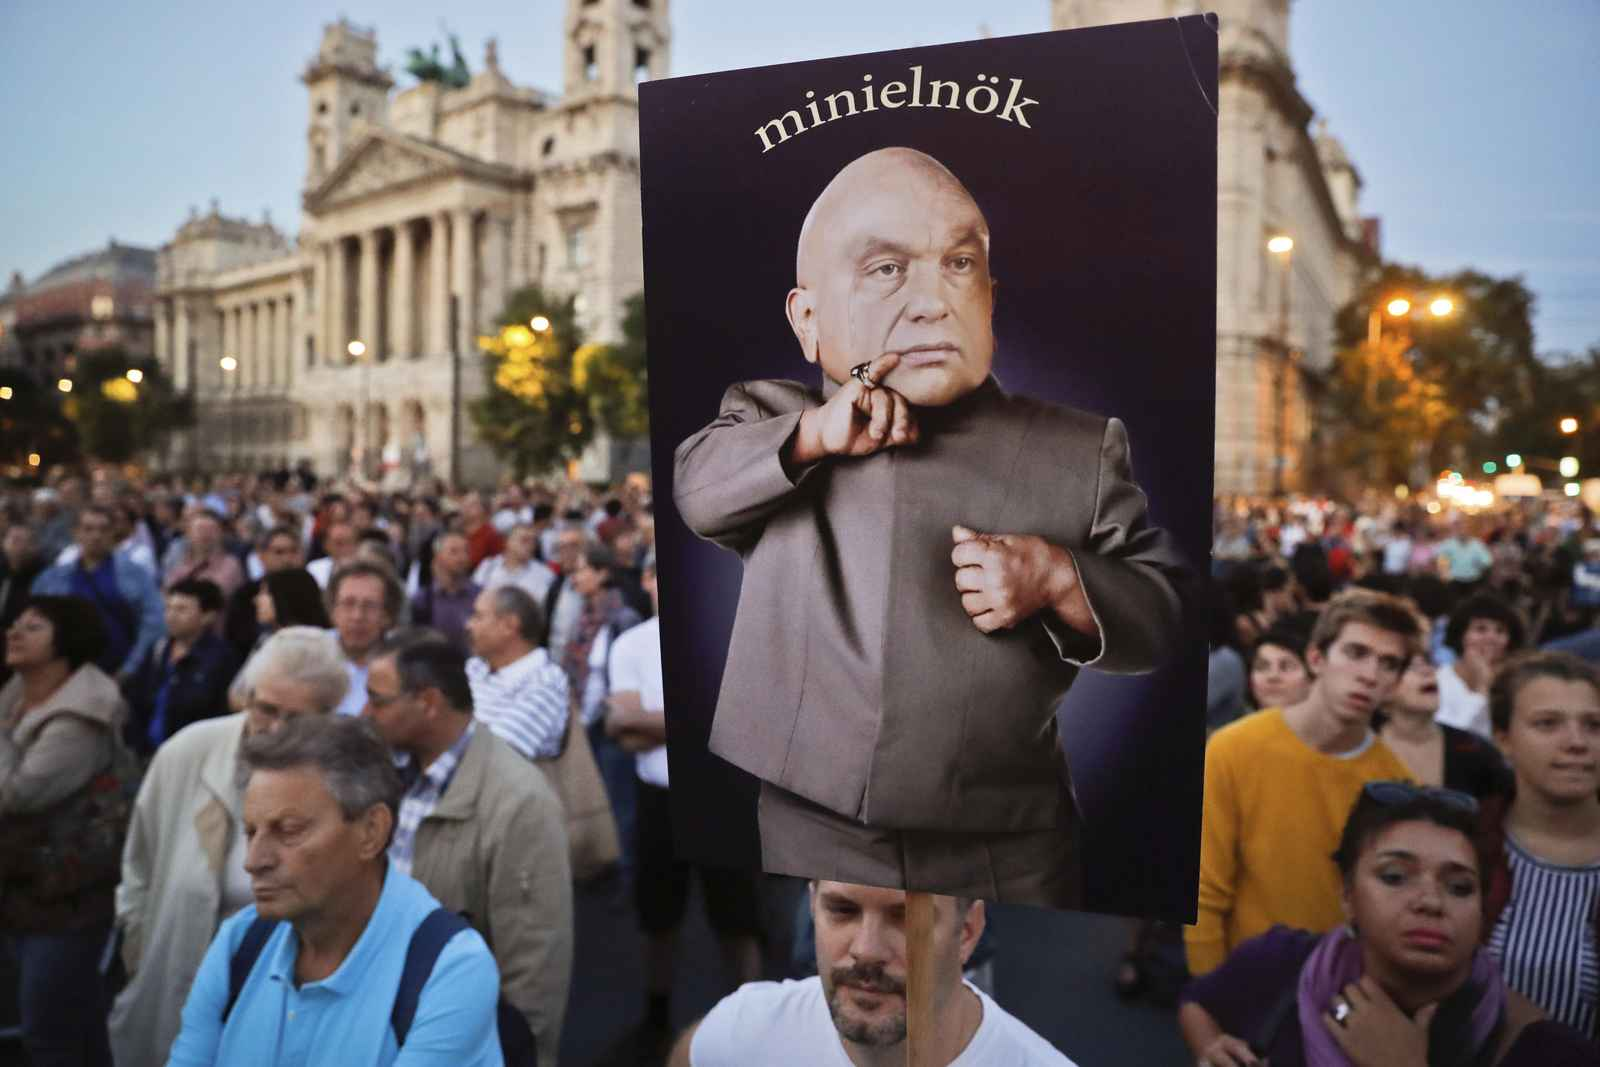 """A man holds a banner depicting Hungarian Premier Viktor Orban, the reads """"mini-prime minister"""" during a protest against Orban's policies regarding migrants in Budapest, Hungary, Friday, Sept. 30, 2016. Hungarians will vote Sunday in a referendum which Prime Minister Viktor Orban hopes will give his government the popular support it seeks to oppose any future plans by the European Union to resettle asylum seekers among its member states.(AP Photo/Vadim Ghirda)"""